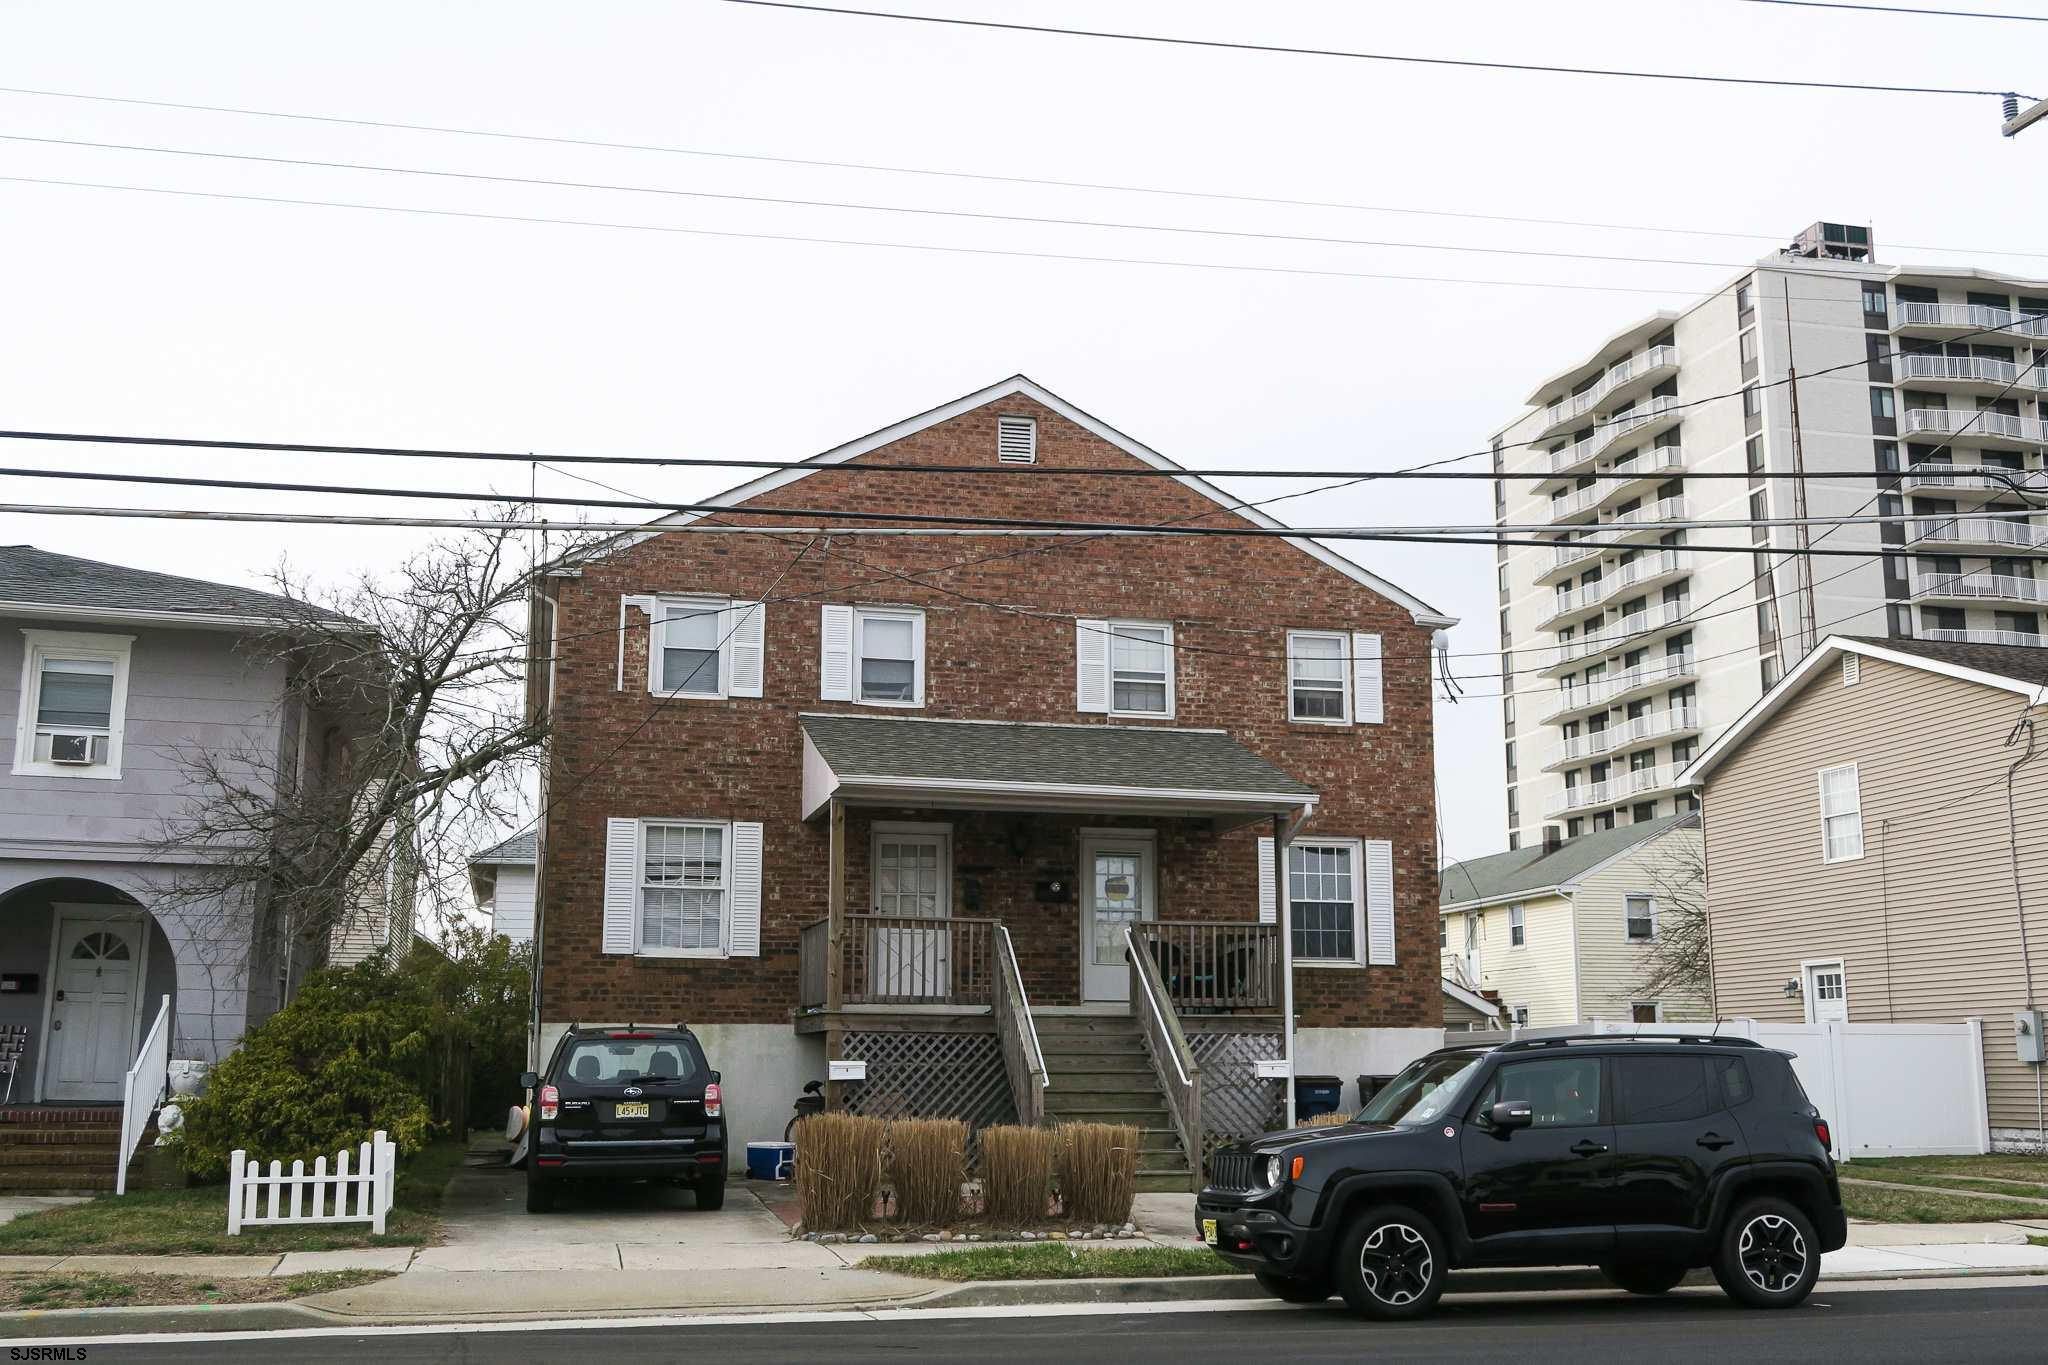 3 bedrooms, 1.5 bathrooms condo awaits at the shore. This property is located in Ventnor Heights jus